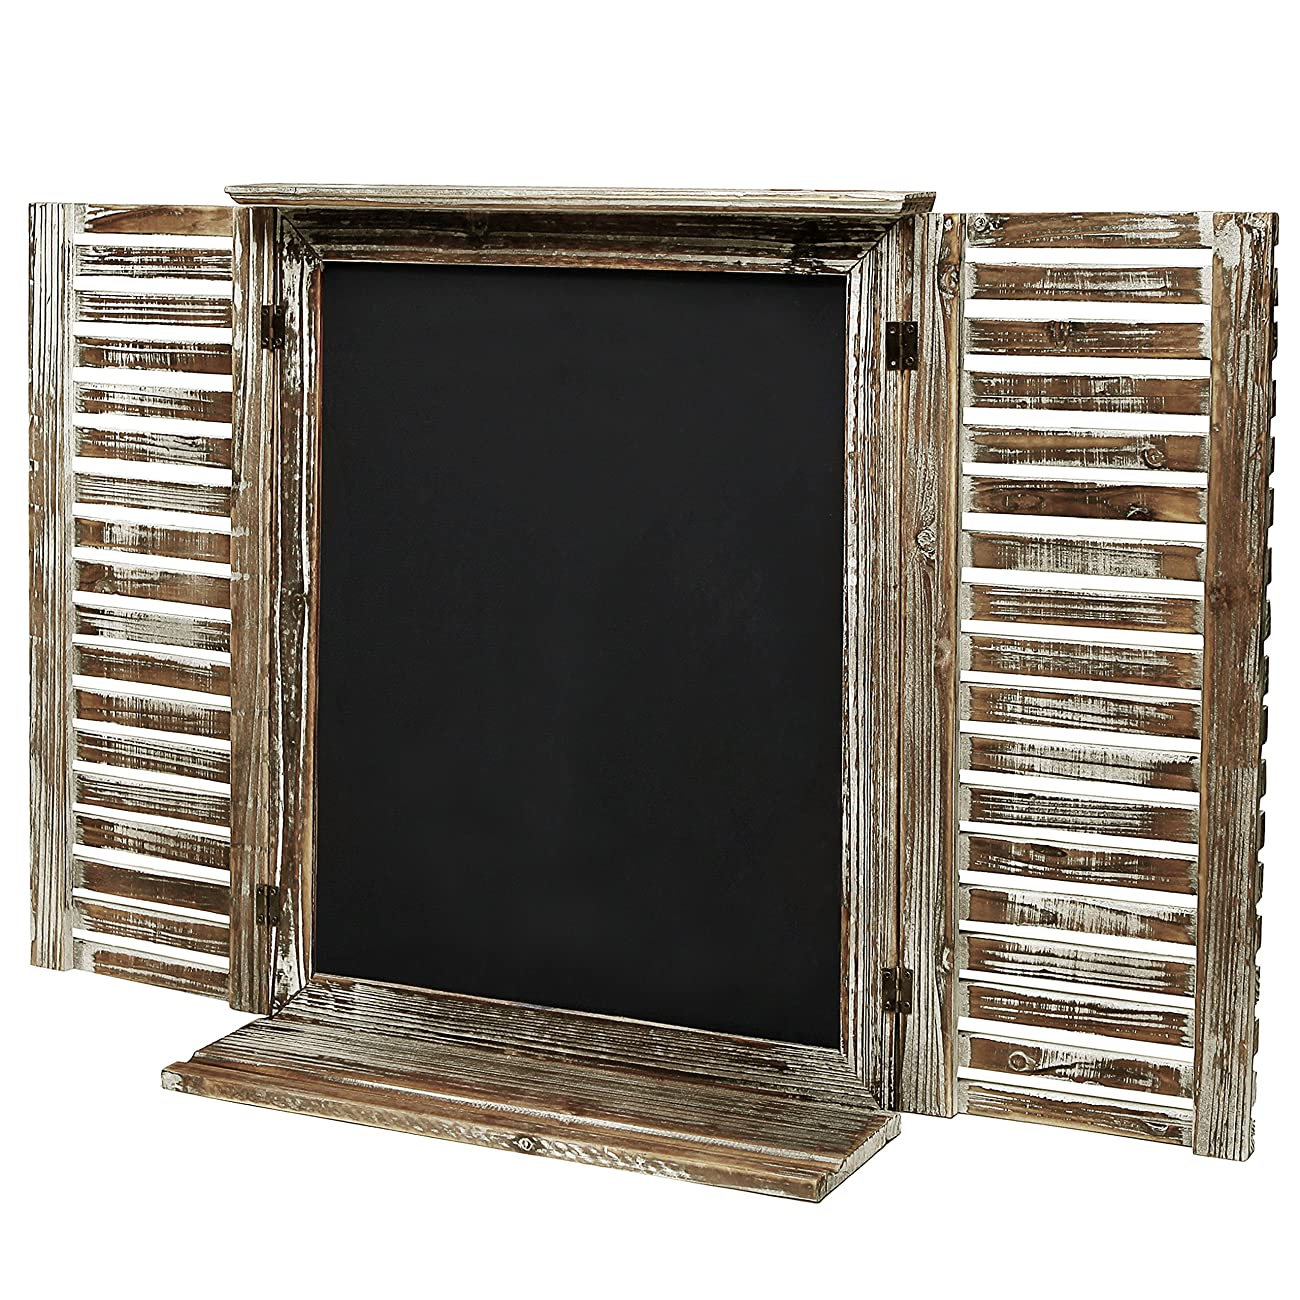 MyGift Rustic Standing Chalkboard with Folding Shutter Doors, Torched Wood Finish 0